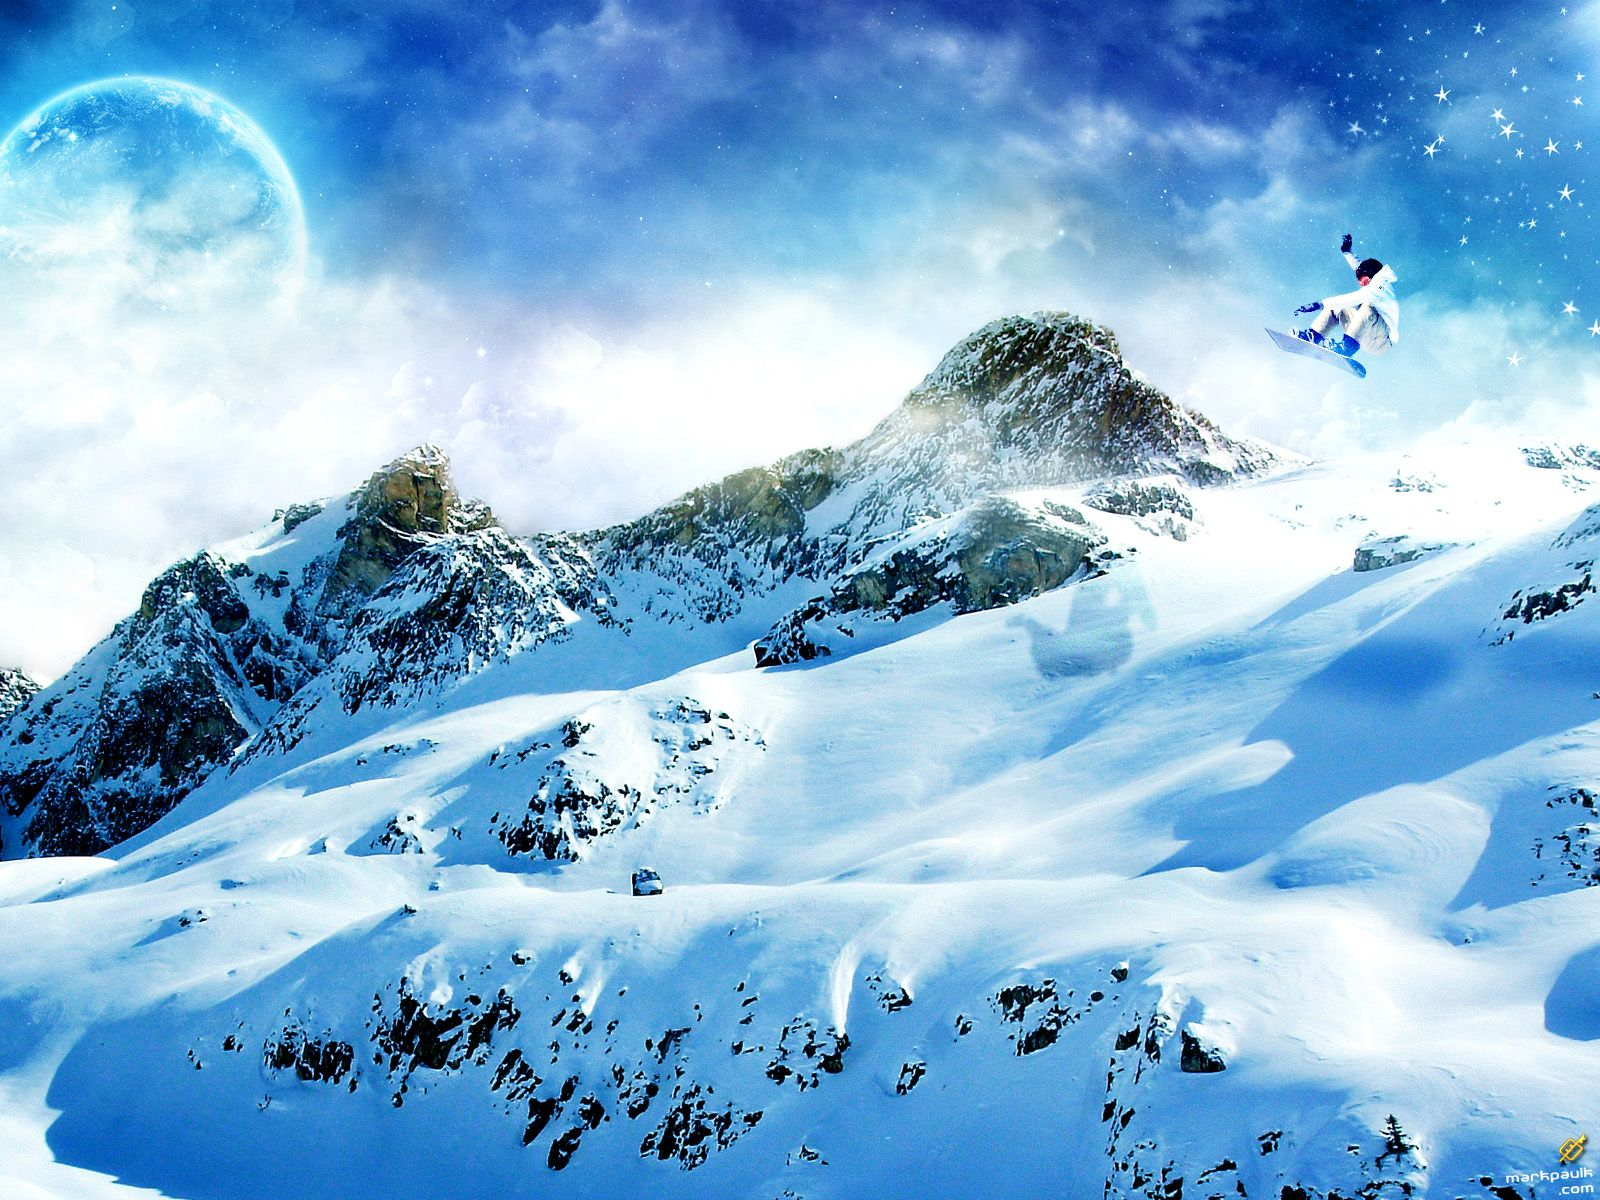 Preview snowboard wallpaper feelgrafix pinterest wallpaper preview snowboard wallpaper voltagebd Image collections